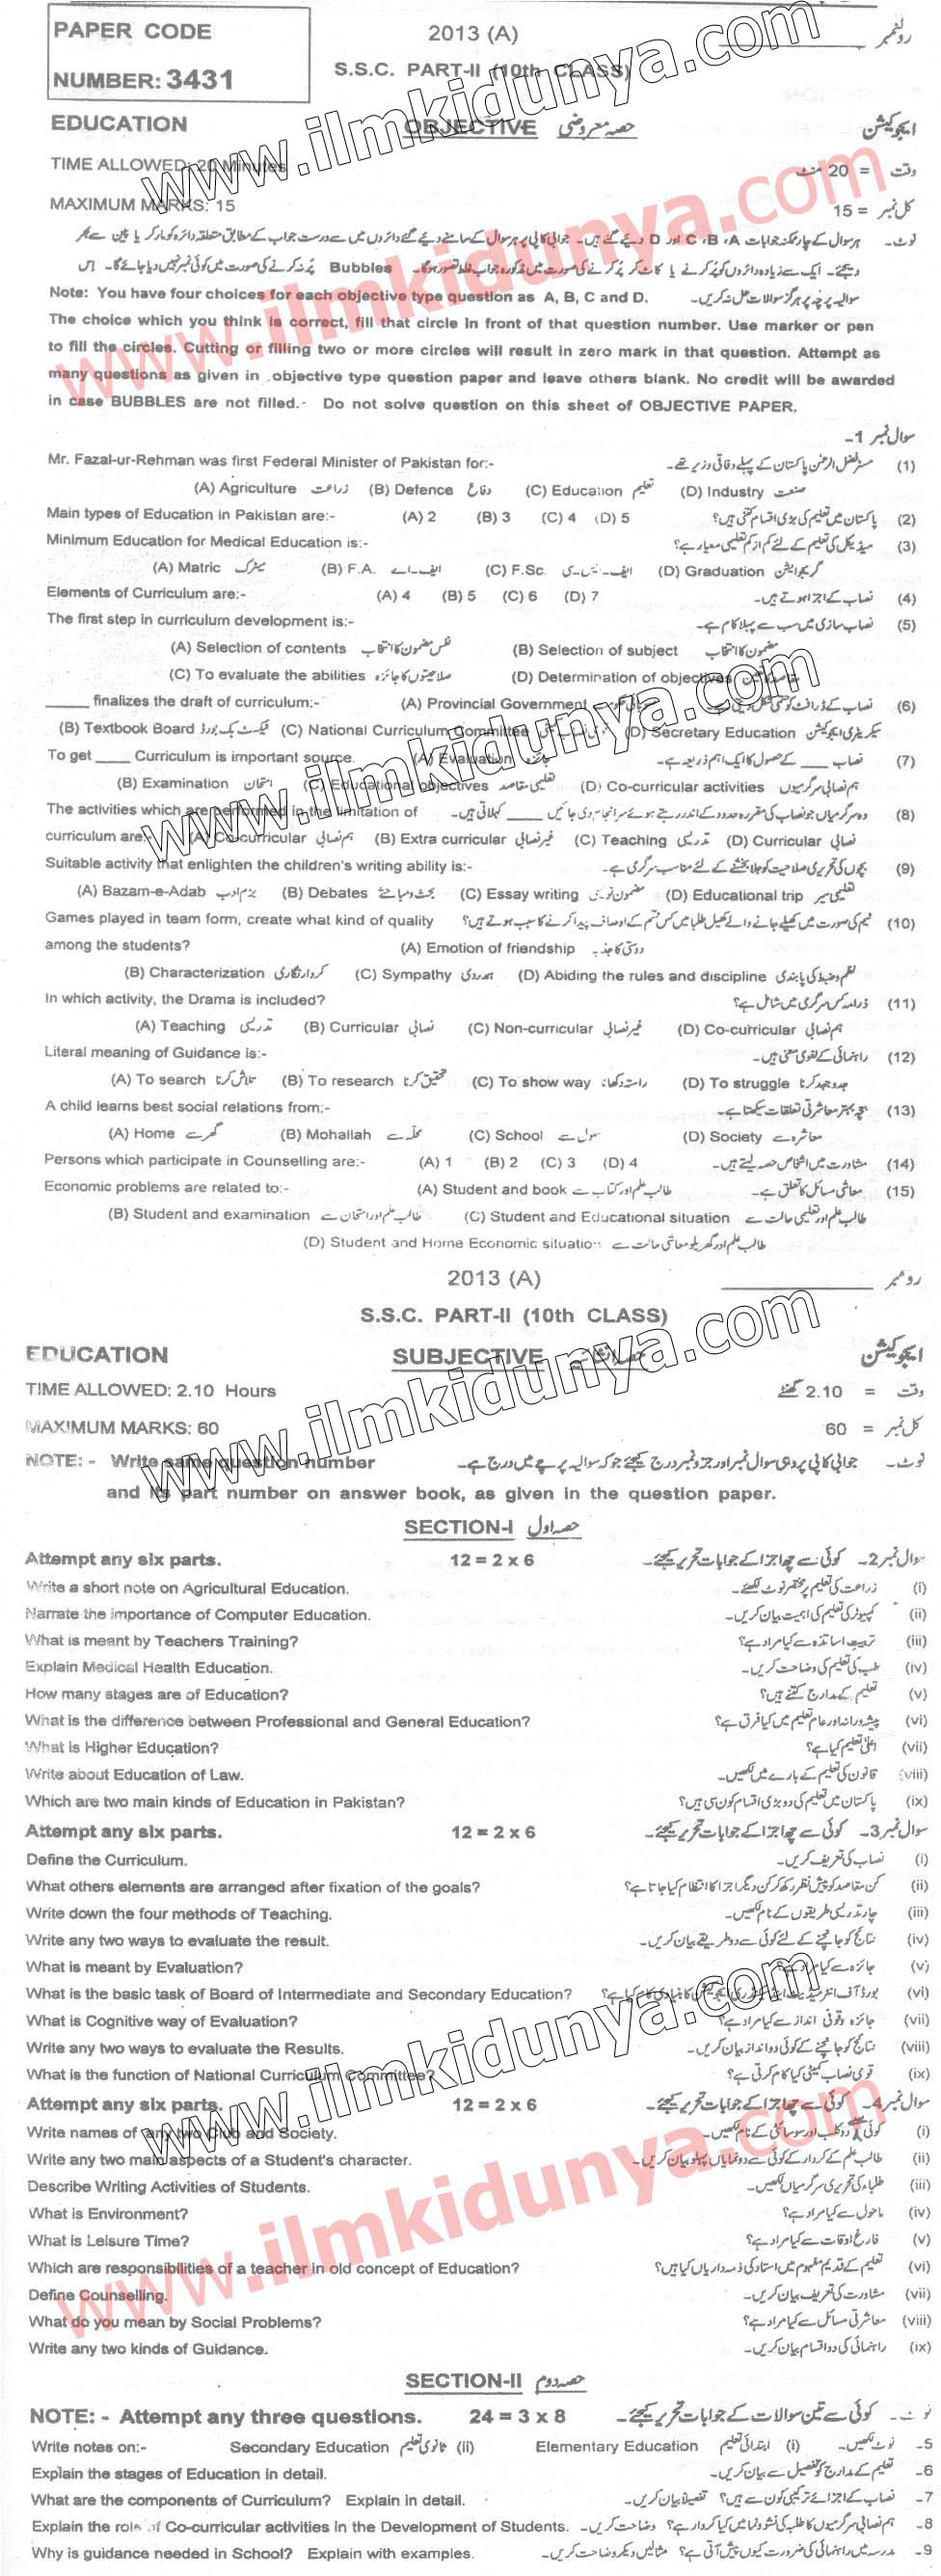 Past Papers 2013 Multan Board 10th Class Education